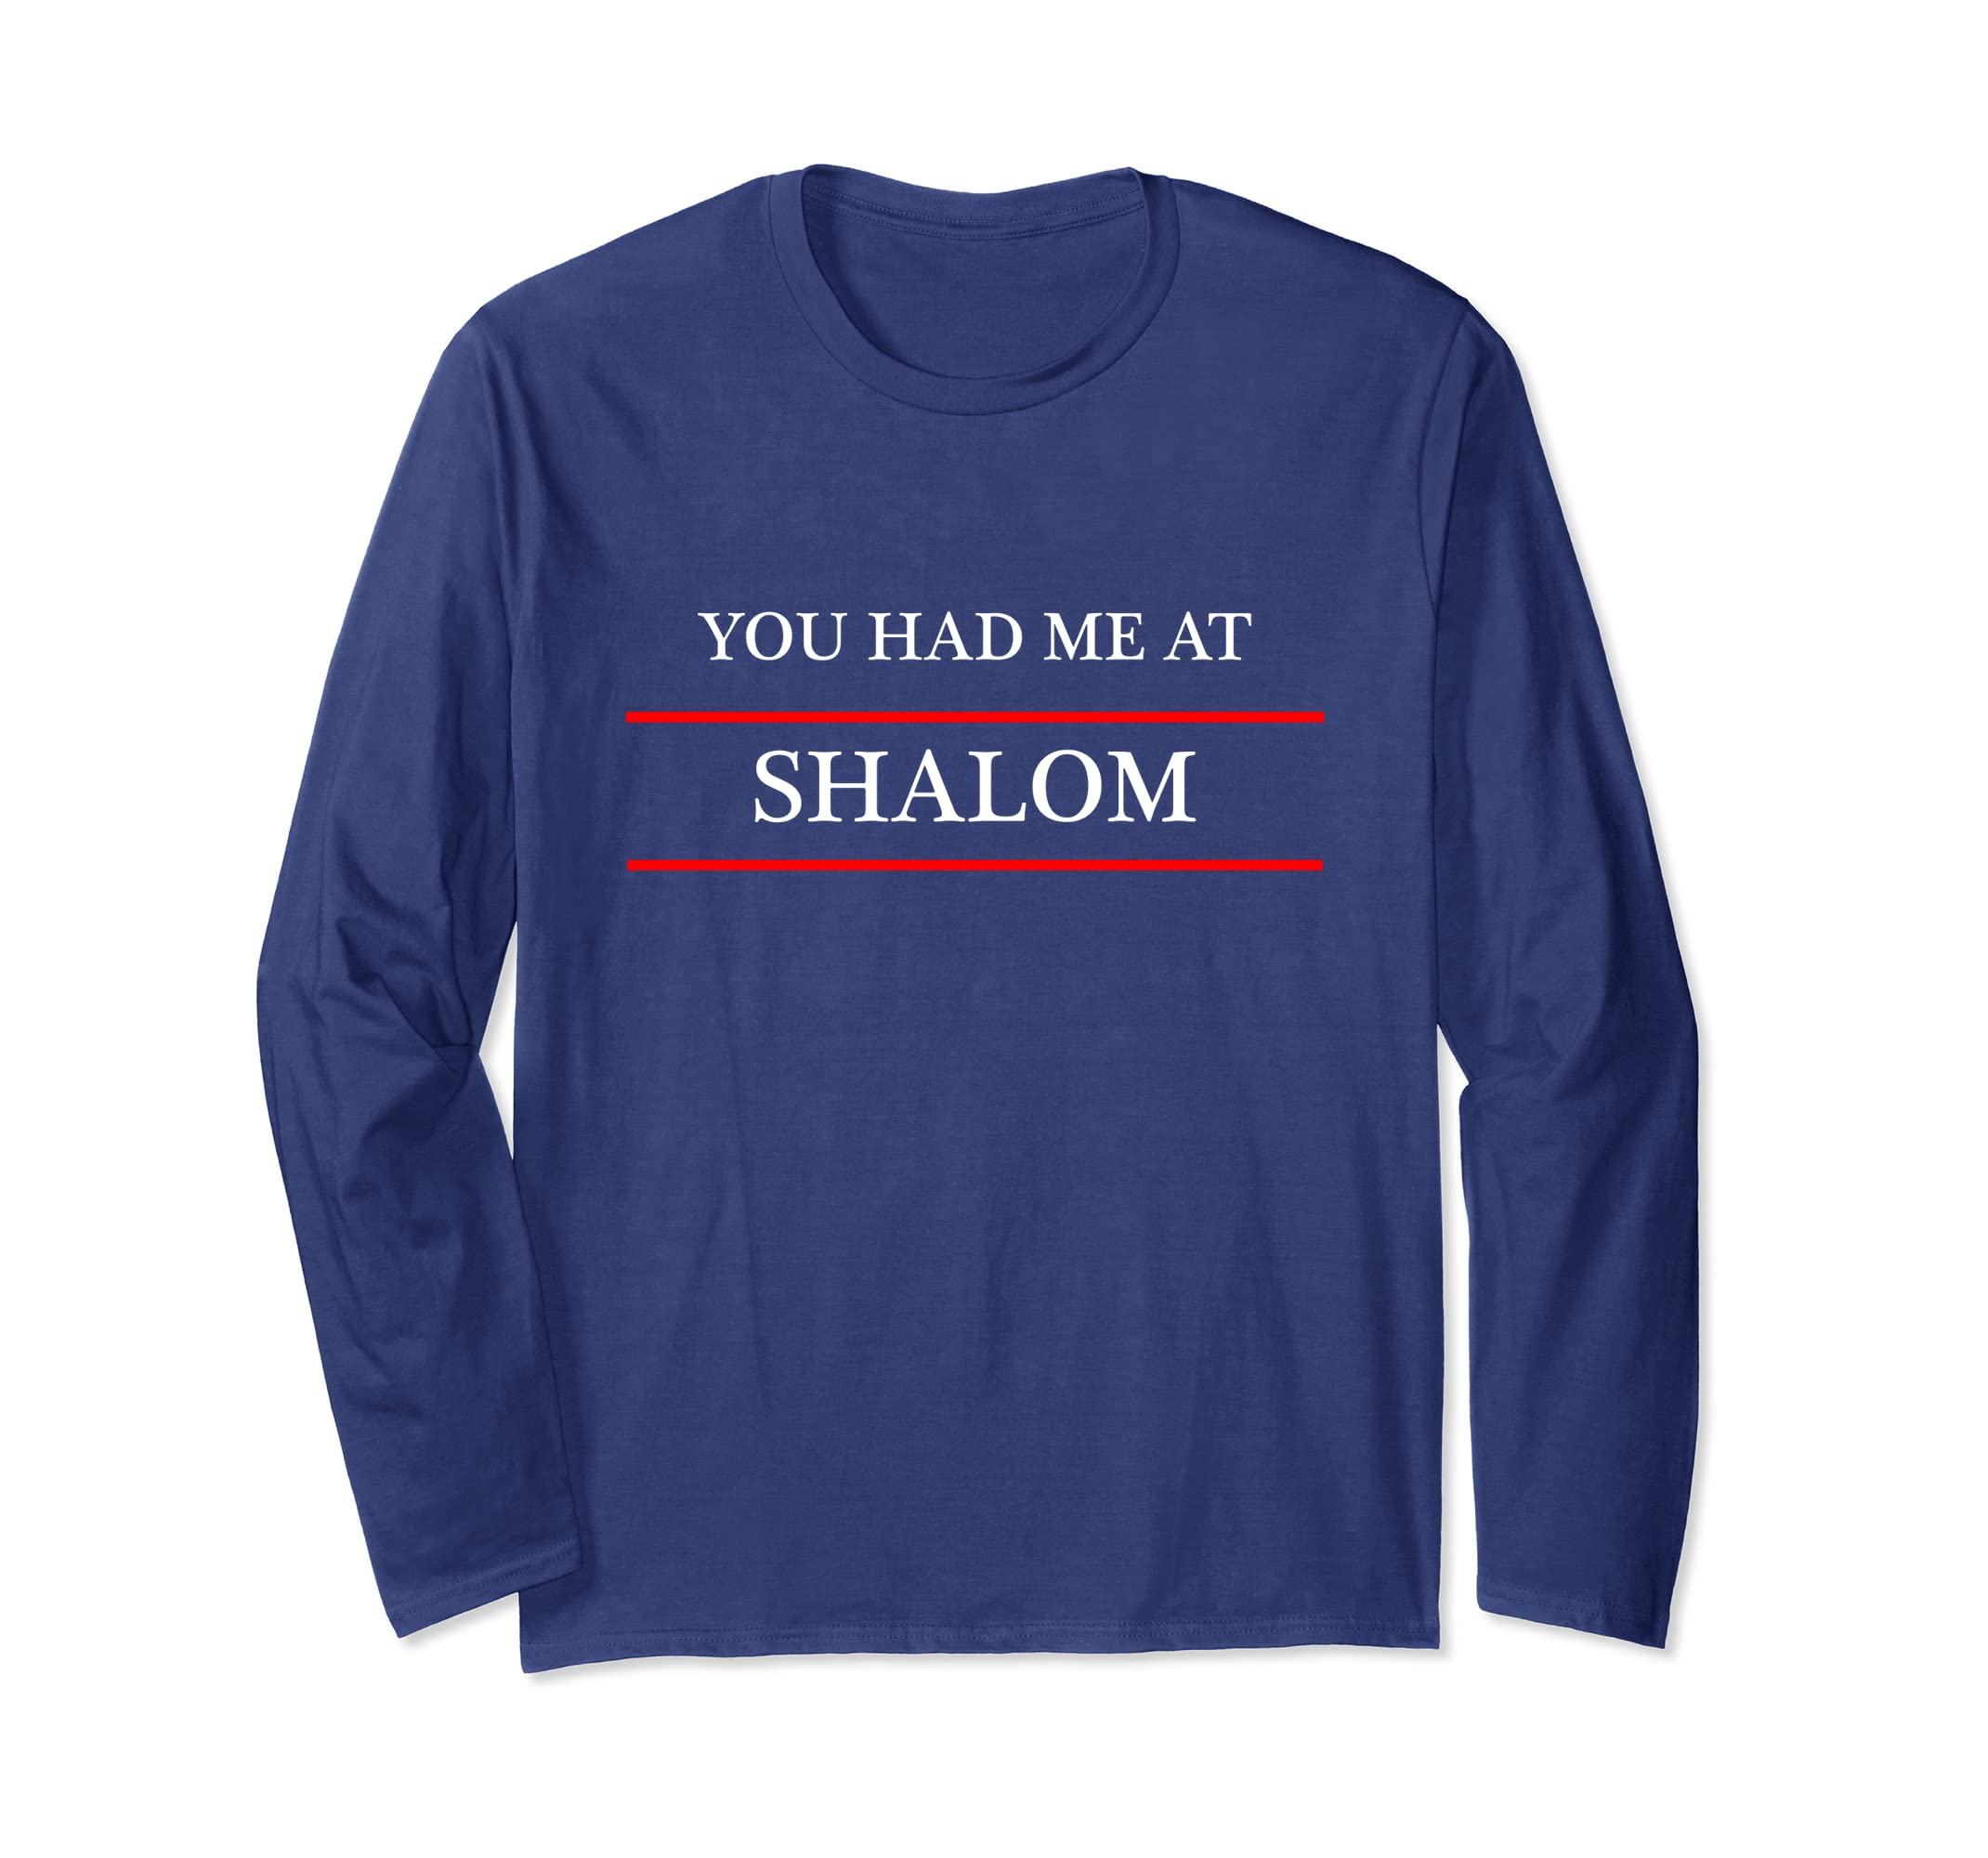 You Had Me At SHALOM - T-Shirt   Cute and Funny Long Sleeve-SFL